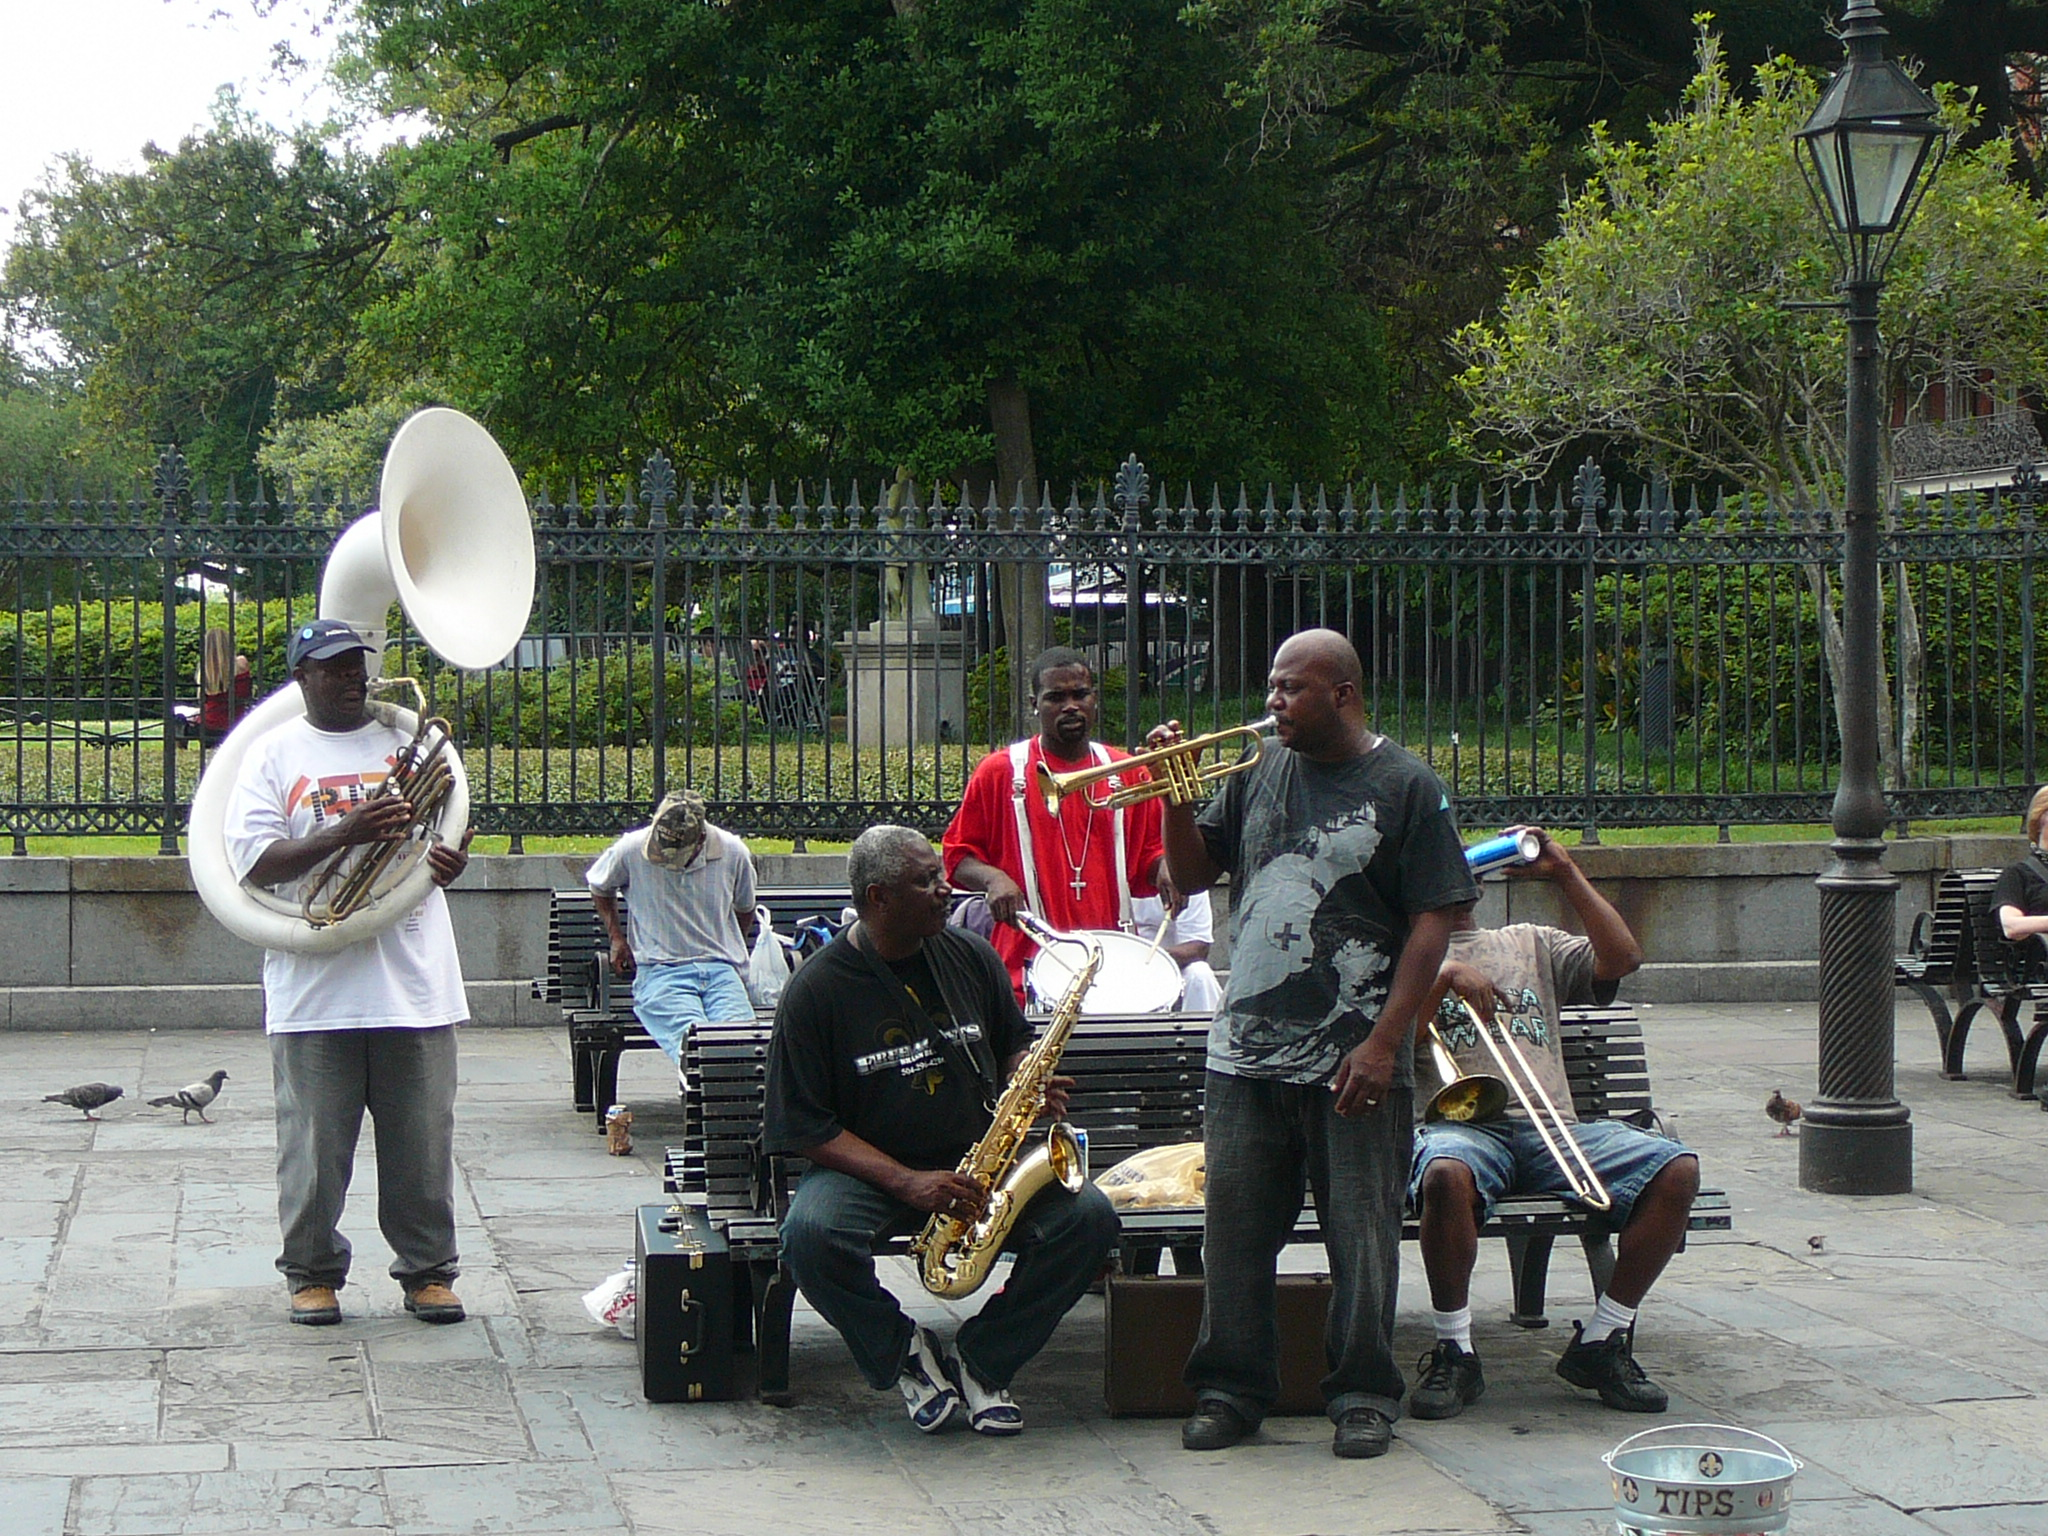 Street Bands in New Orleans